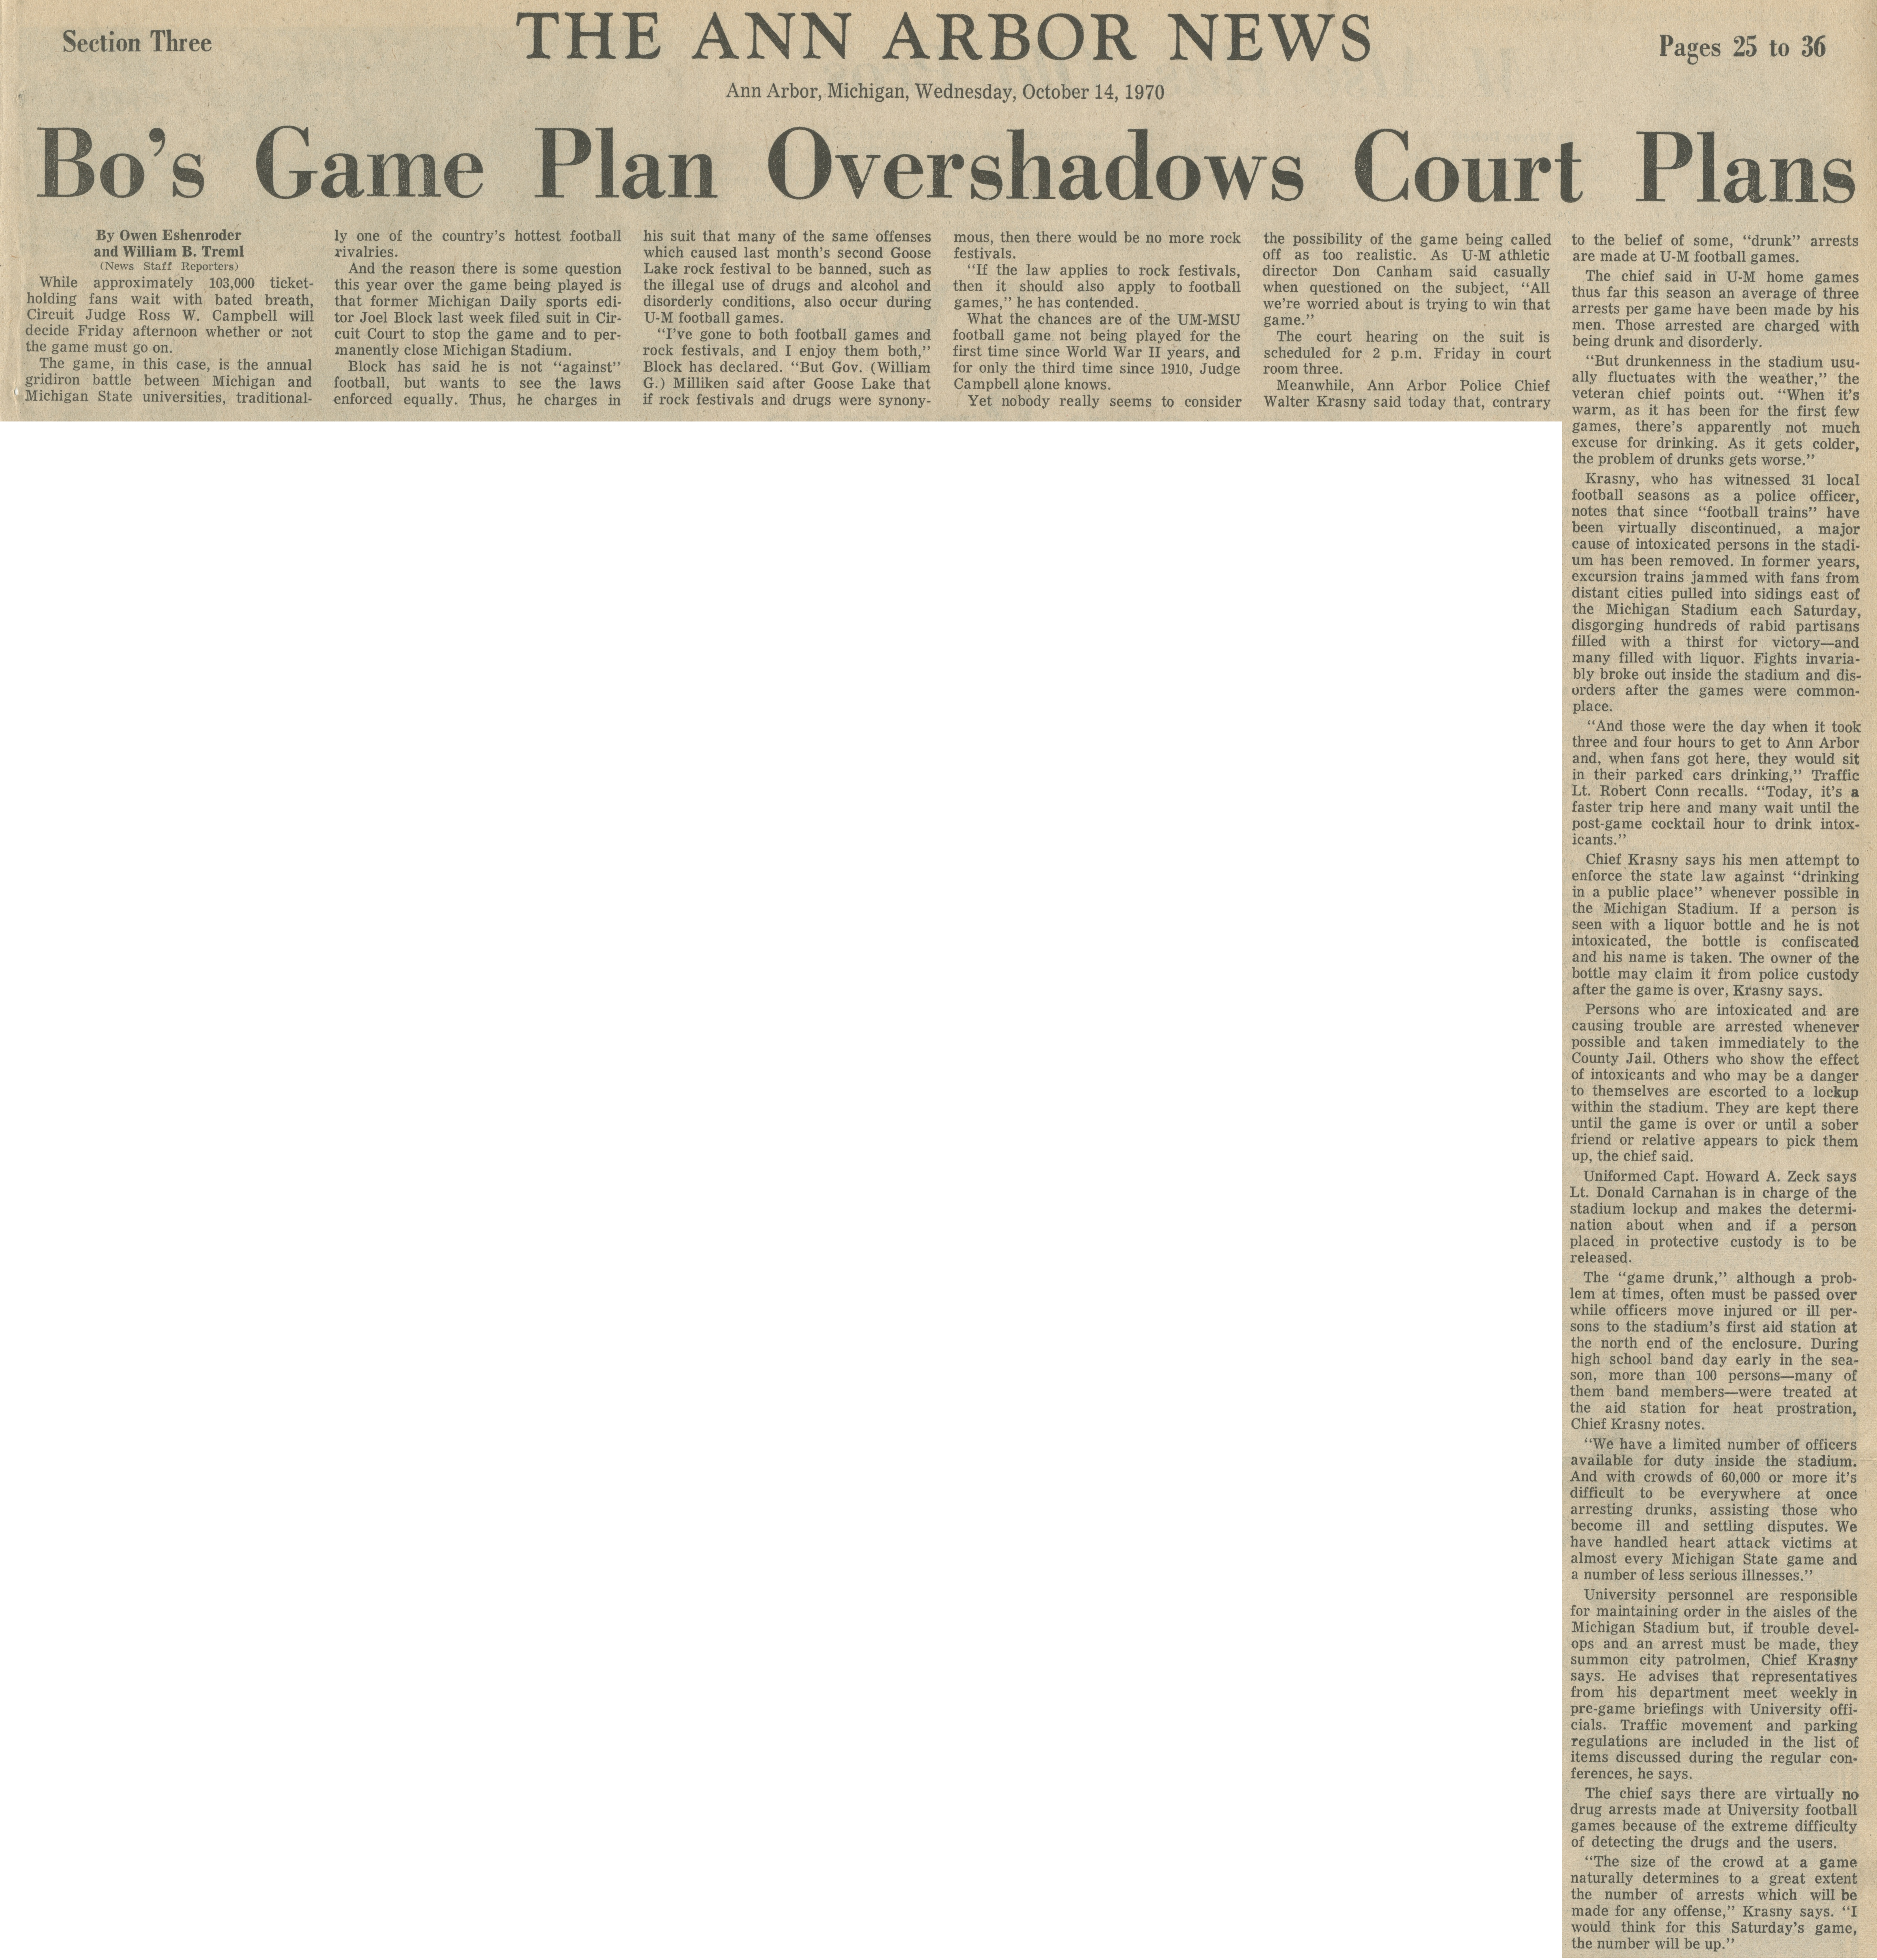 Bo's Game Plan Overshadows Court Plans image